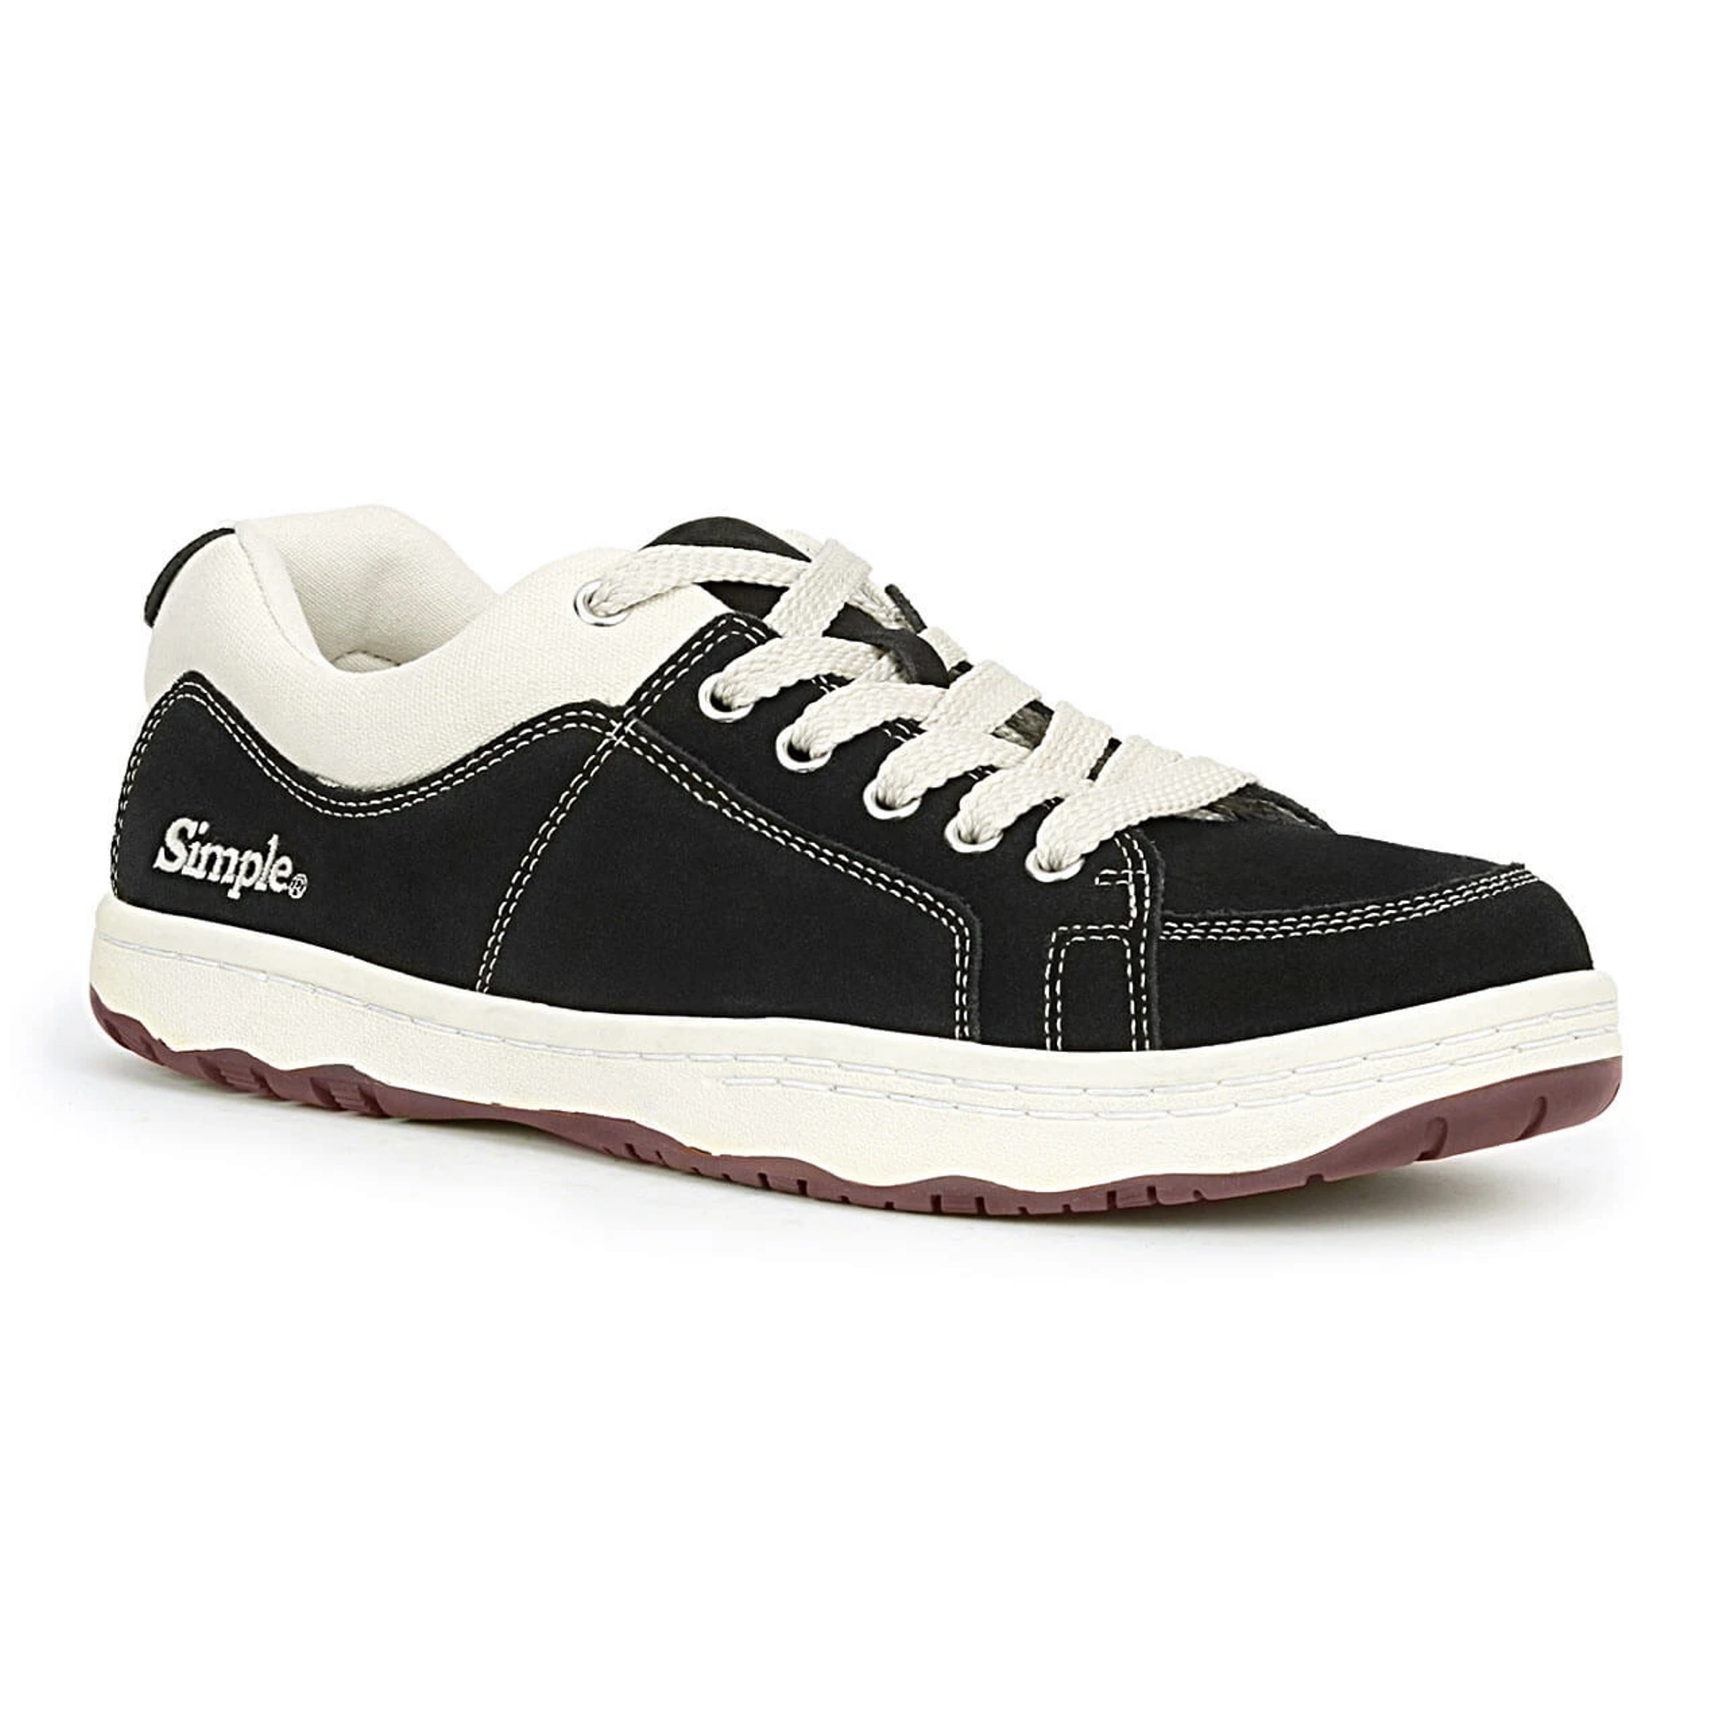 Simple Shoes OS Sneaker, Suede, Black